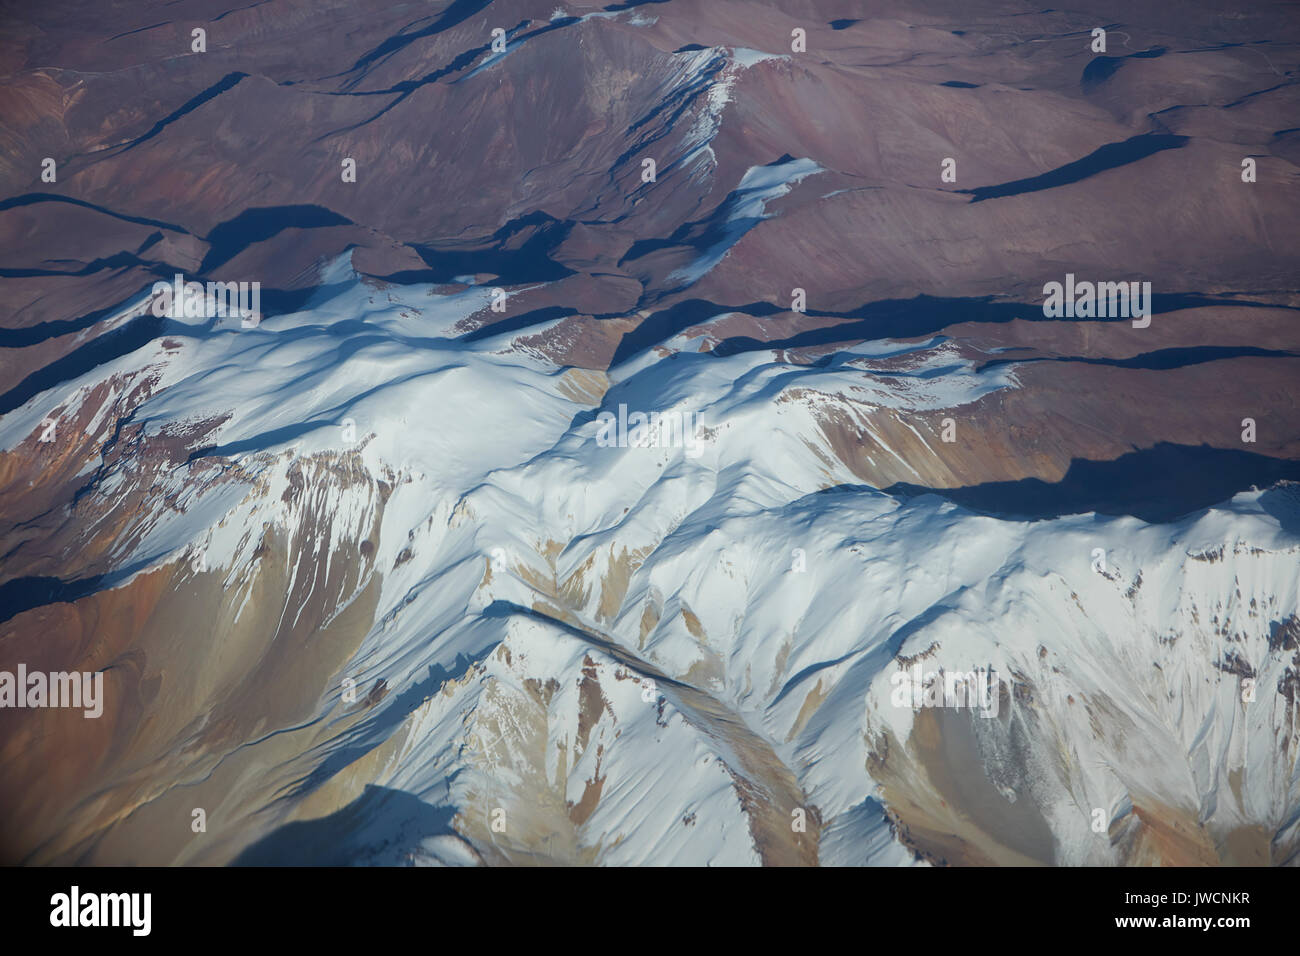 Alto Toroni (Cerro Sillajguay, 5995m/19,669ft), Andes Mountain Range, Chile - Bolivia border, South America - aerial - Stock Image